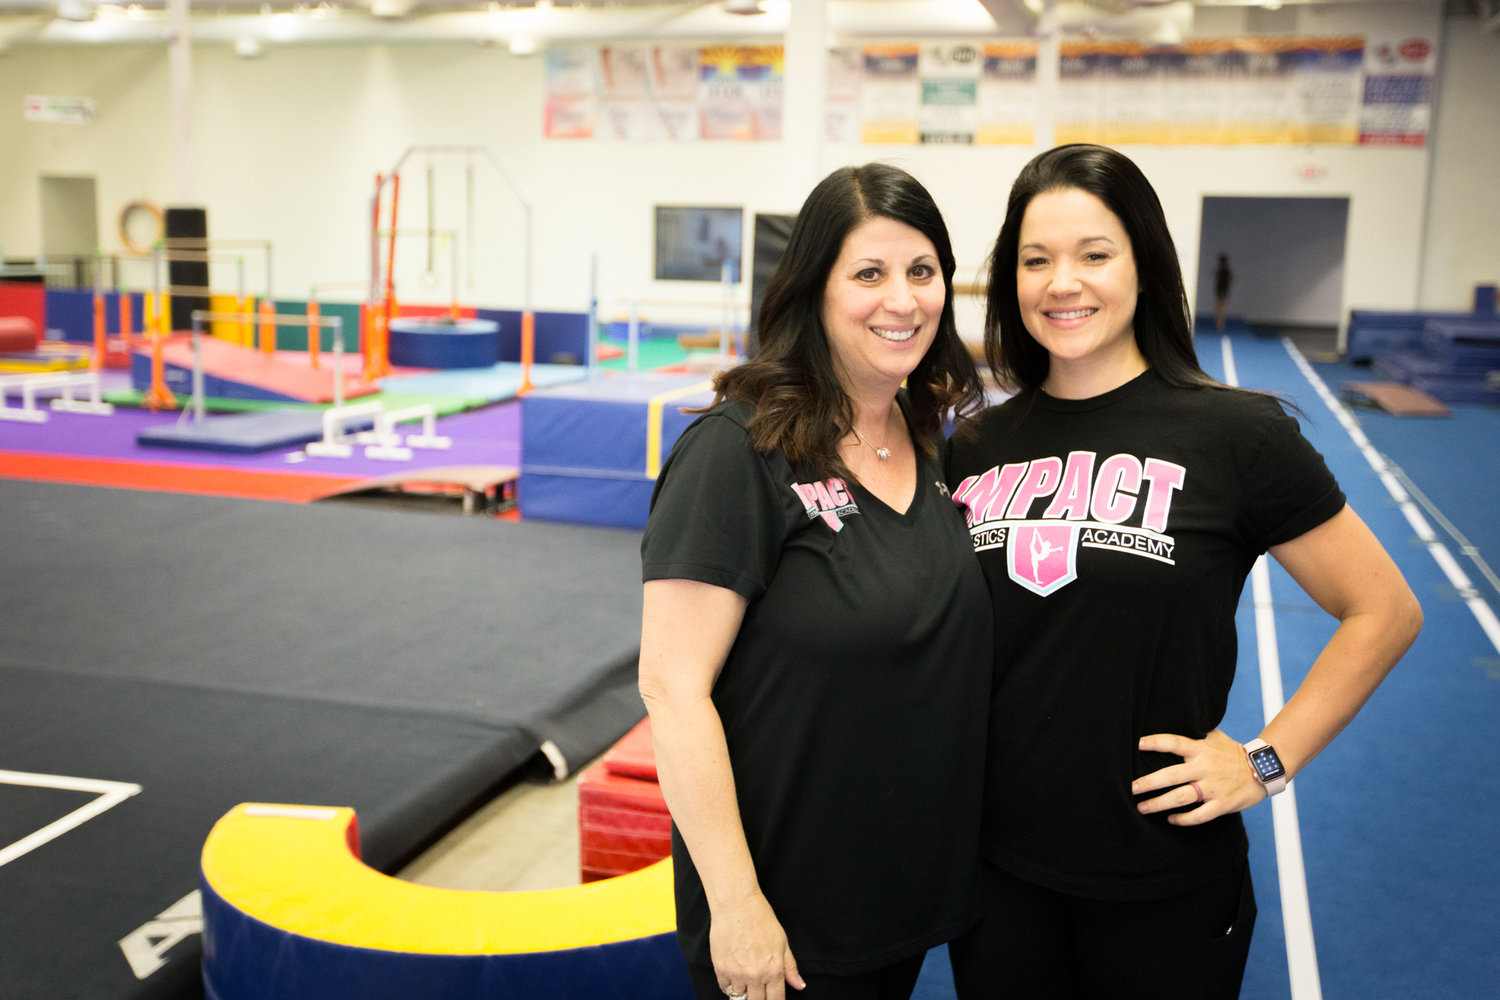 Impact Gymnastics Academy is hosting study camps to allow school-age children to have a structured environment to complete their online learning.